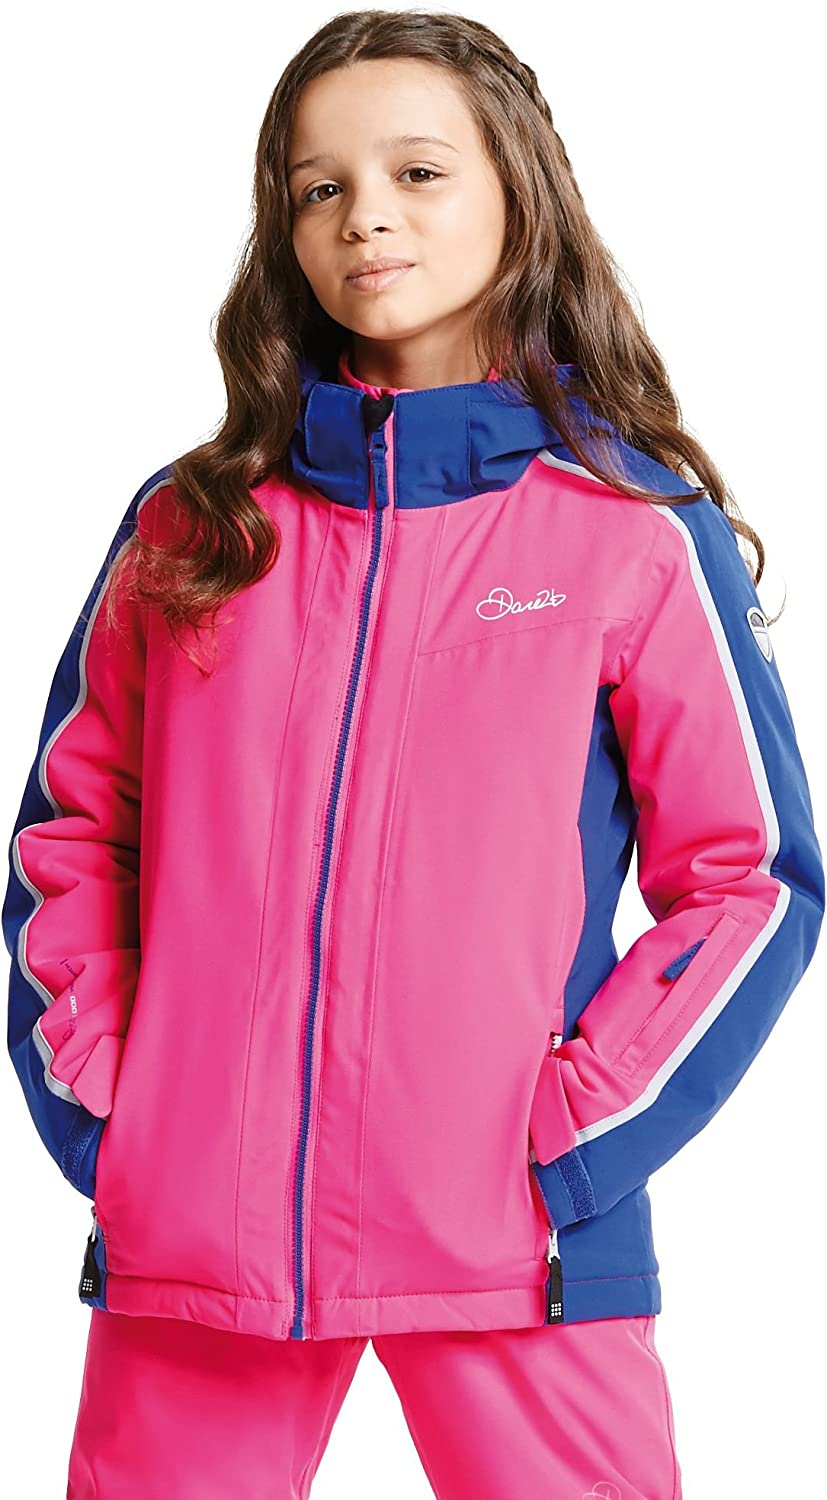 Dare 2b Childrens Beguile Waterproof Insulated Jacket